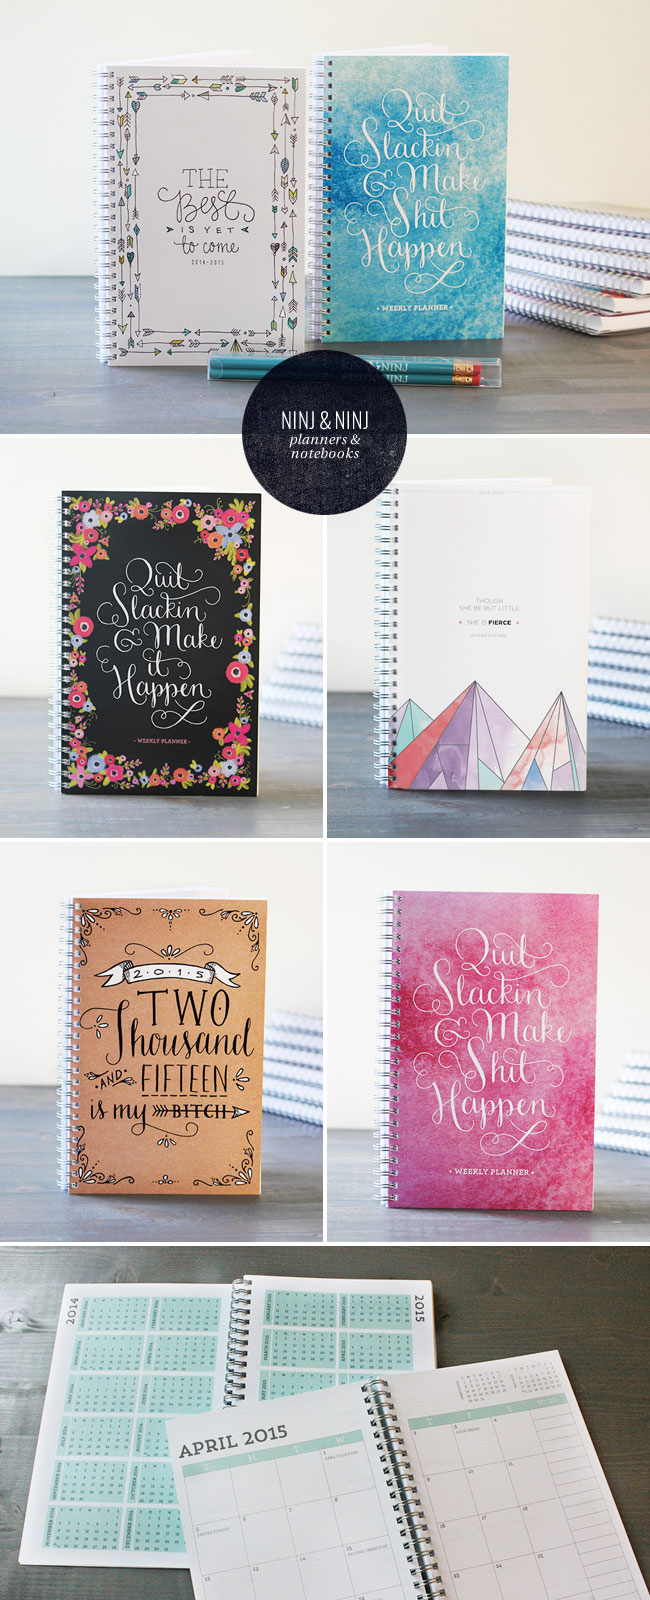 Ninj & Ninj Planners and Notebooks